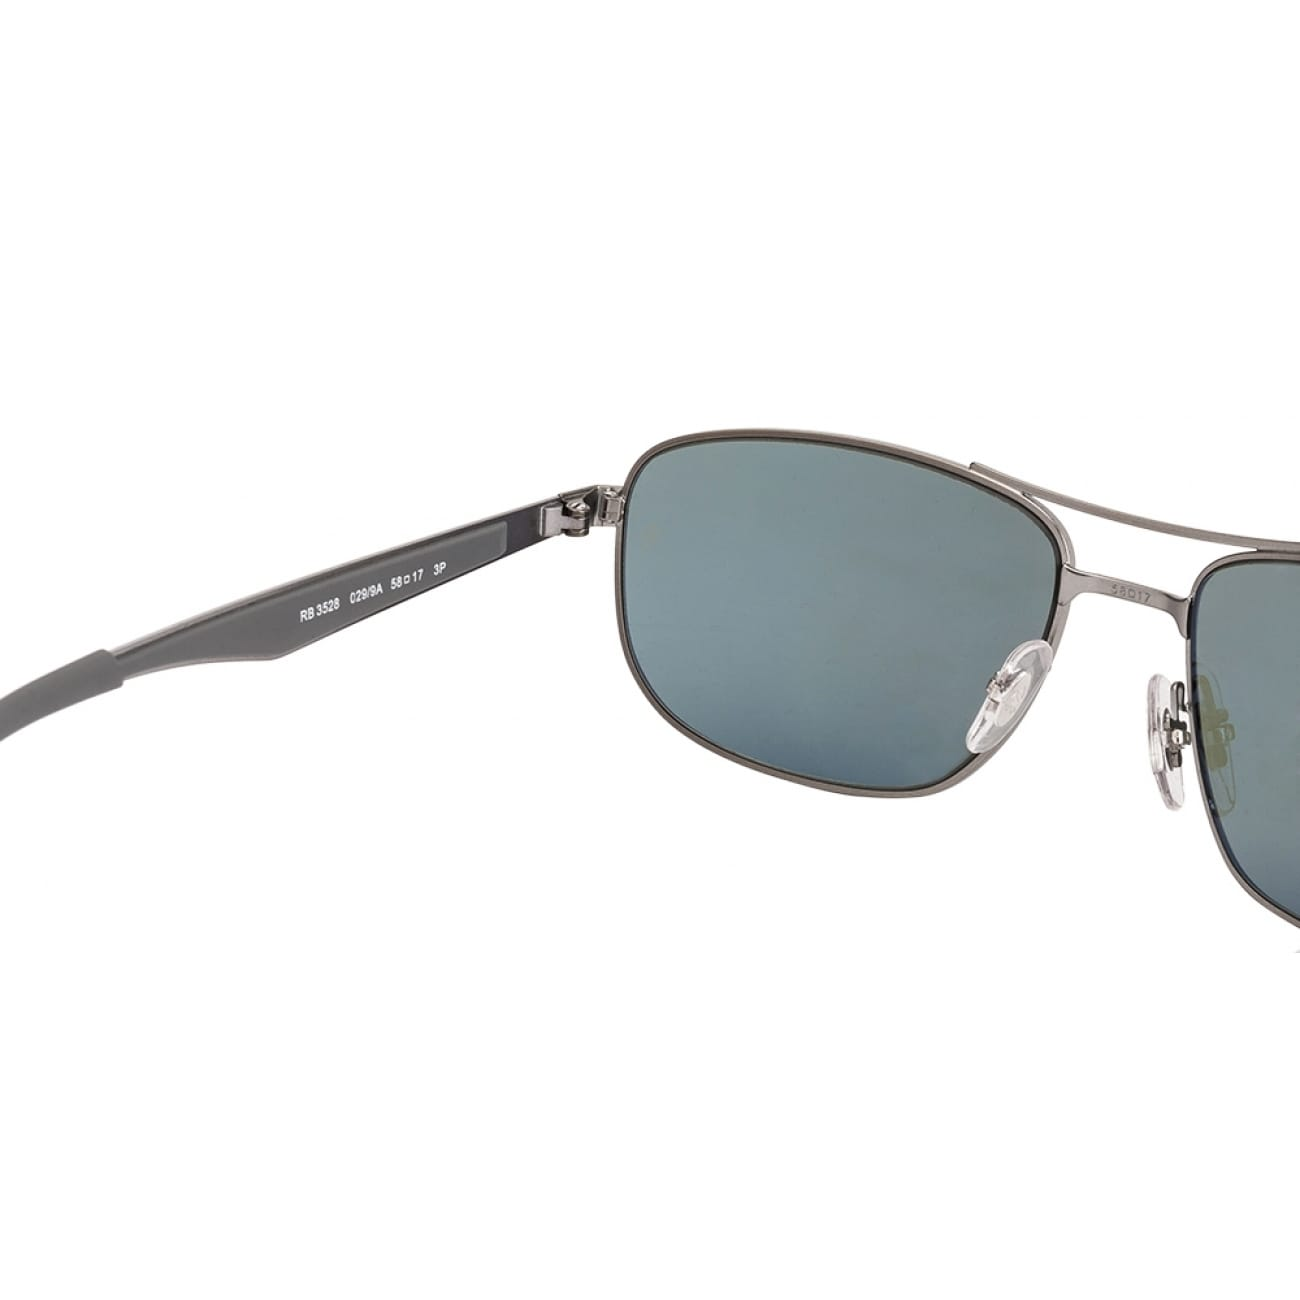 49415f823bd Shop Ray-Ban Men s RB3528 029 9A Gunmetal Frame Polarized Green Classic  G-15 58 mm Lens Sunglasses - Free Shipping Today - Overstock - 16740938